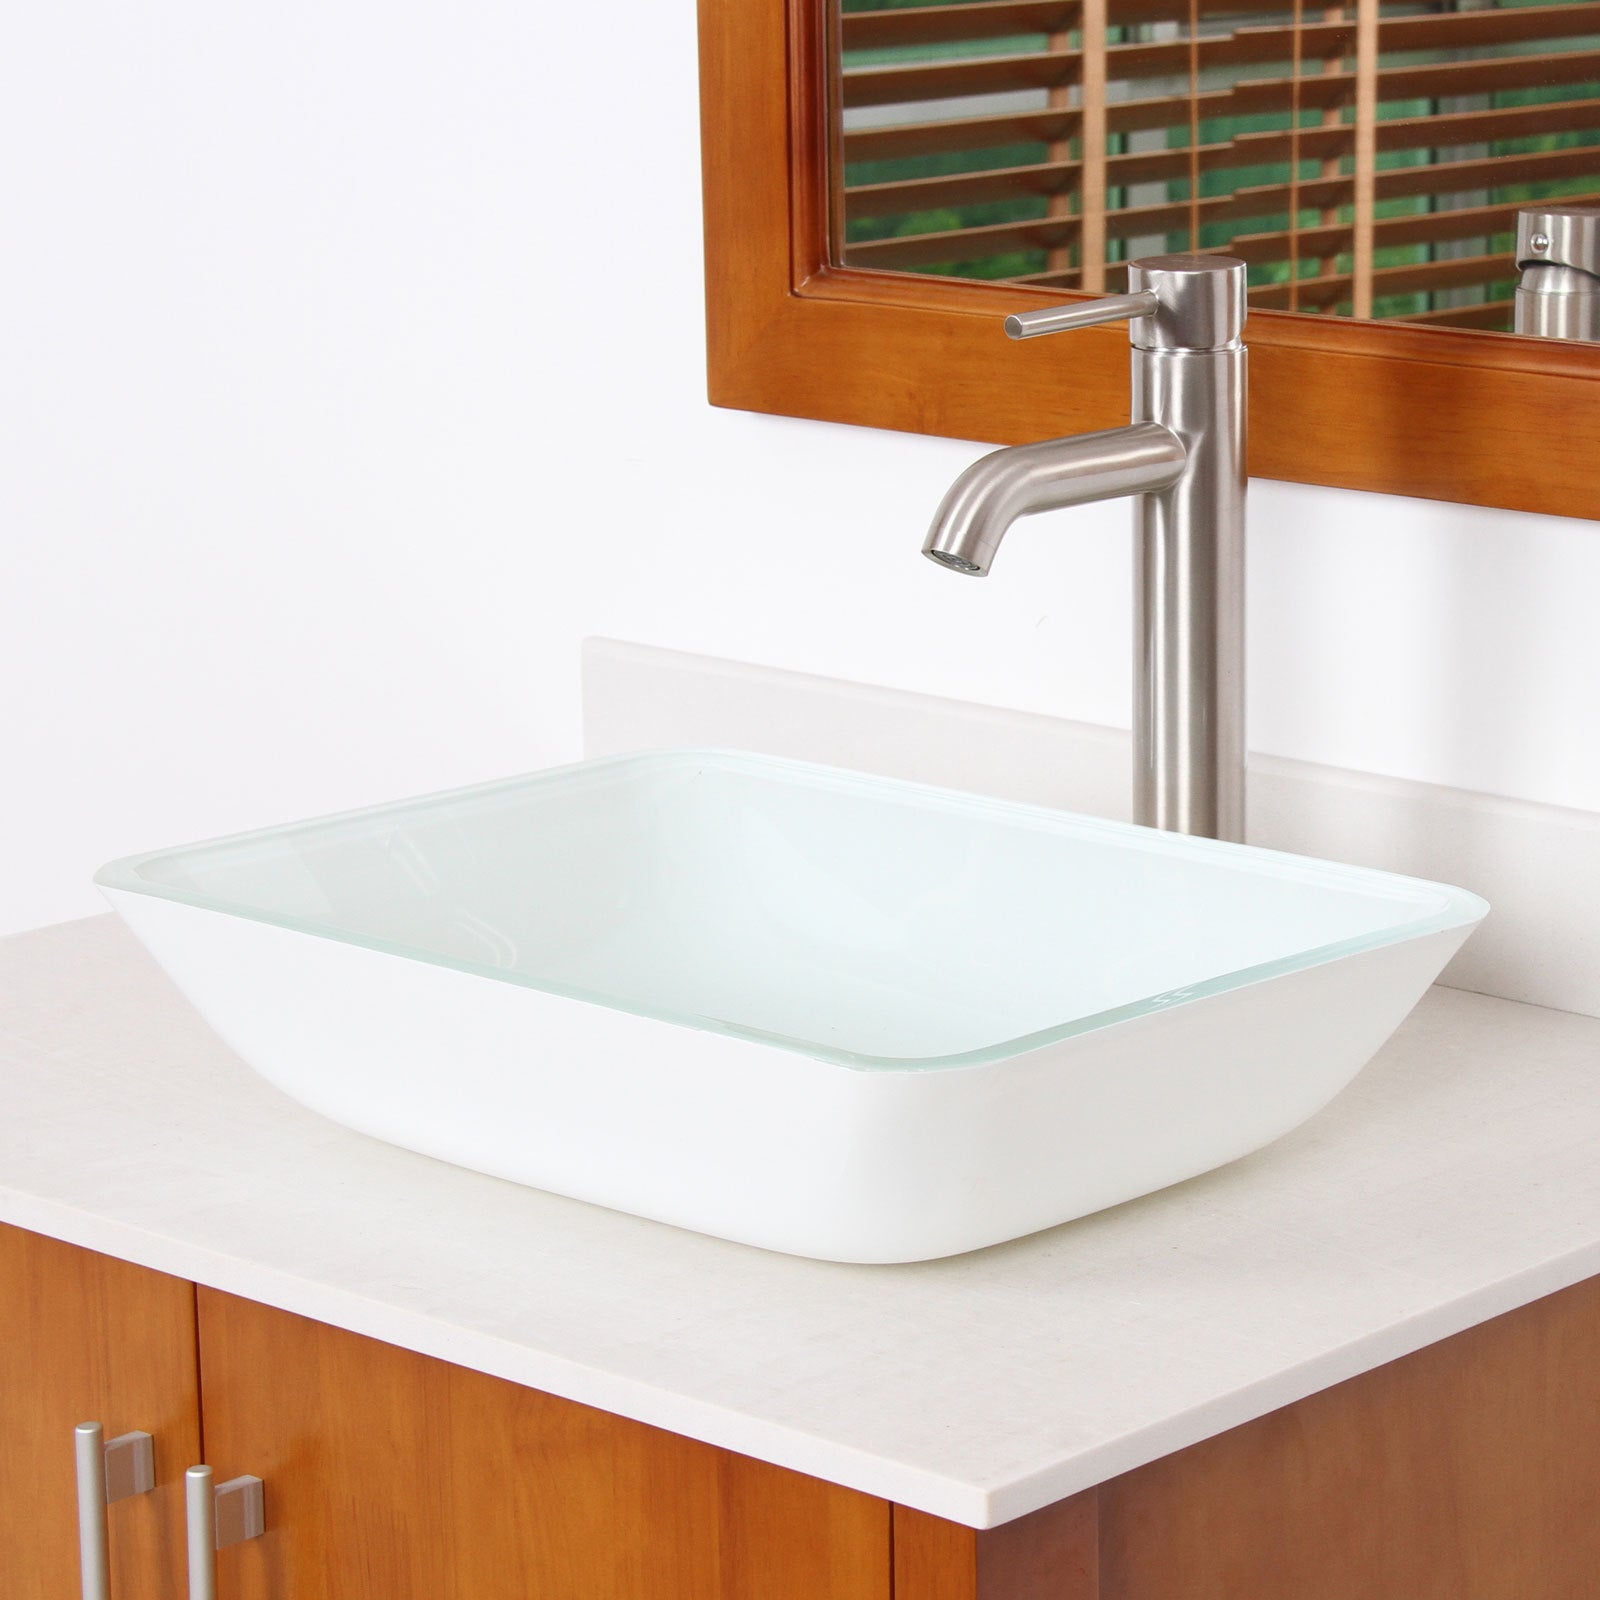 counter translucence sink without collection vessel decolav tempered a countertops sacrificing tbk designed thick products are montana in lavatories glass these use any bathroom durability creating round sinks above centerpiece for